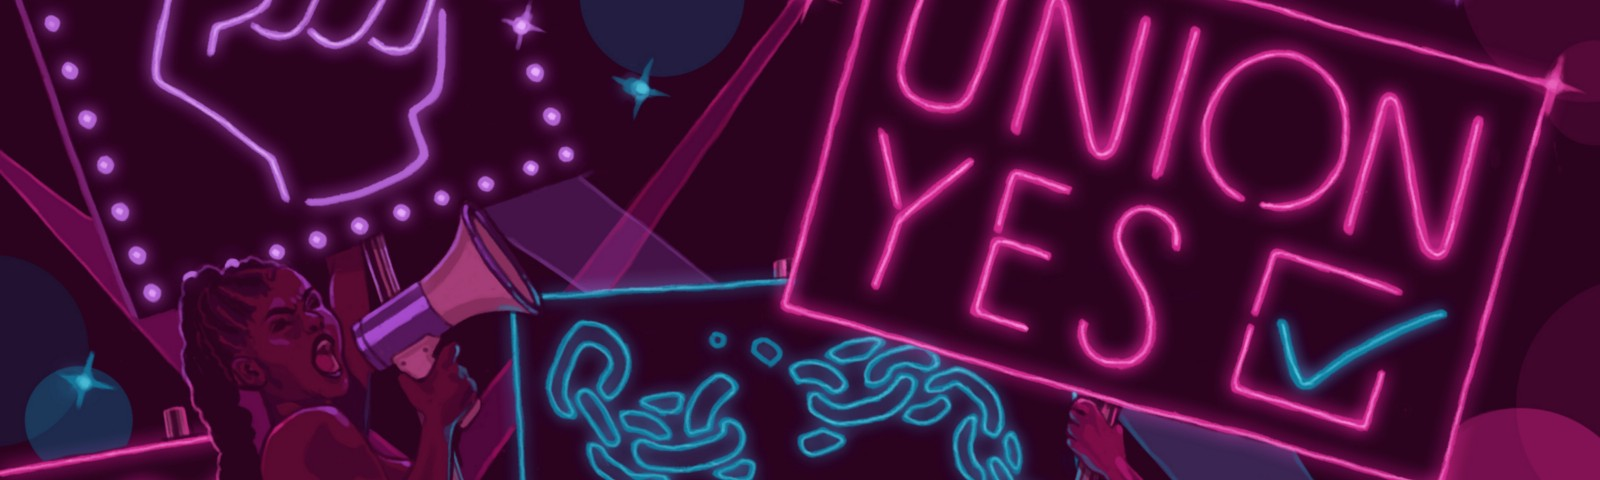 """A graphic illustration showing two Black pole dancers with neon signs mounted on their poles, one says """"UNION YES."""""""